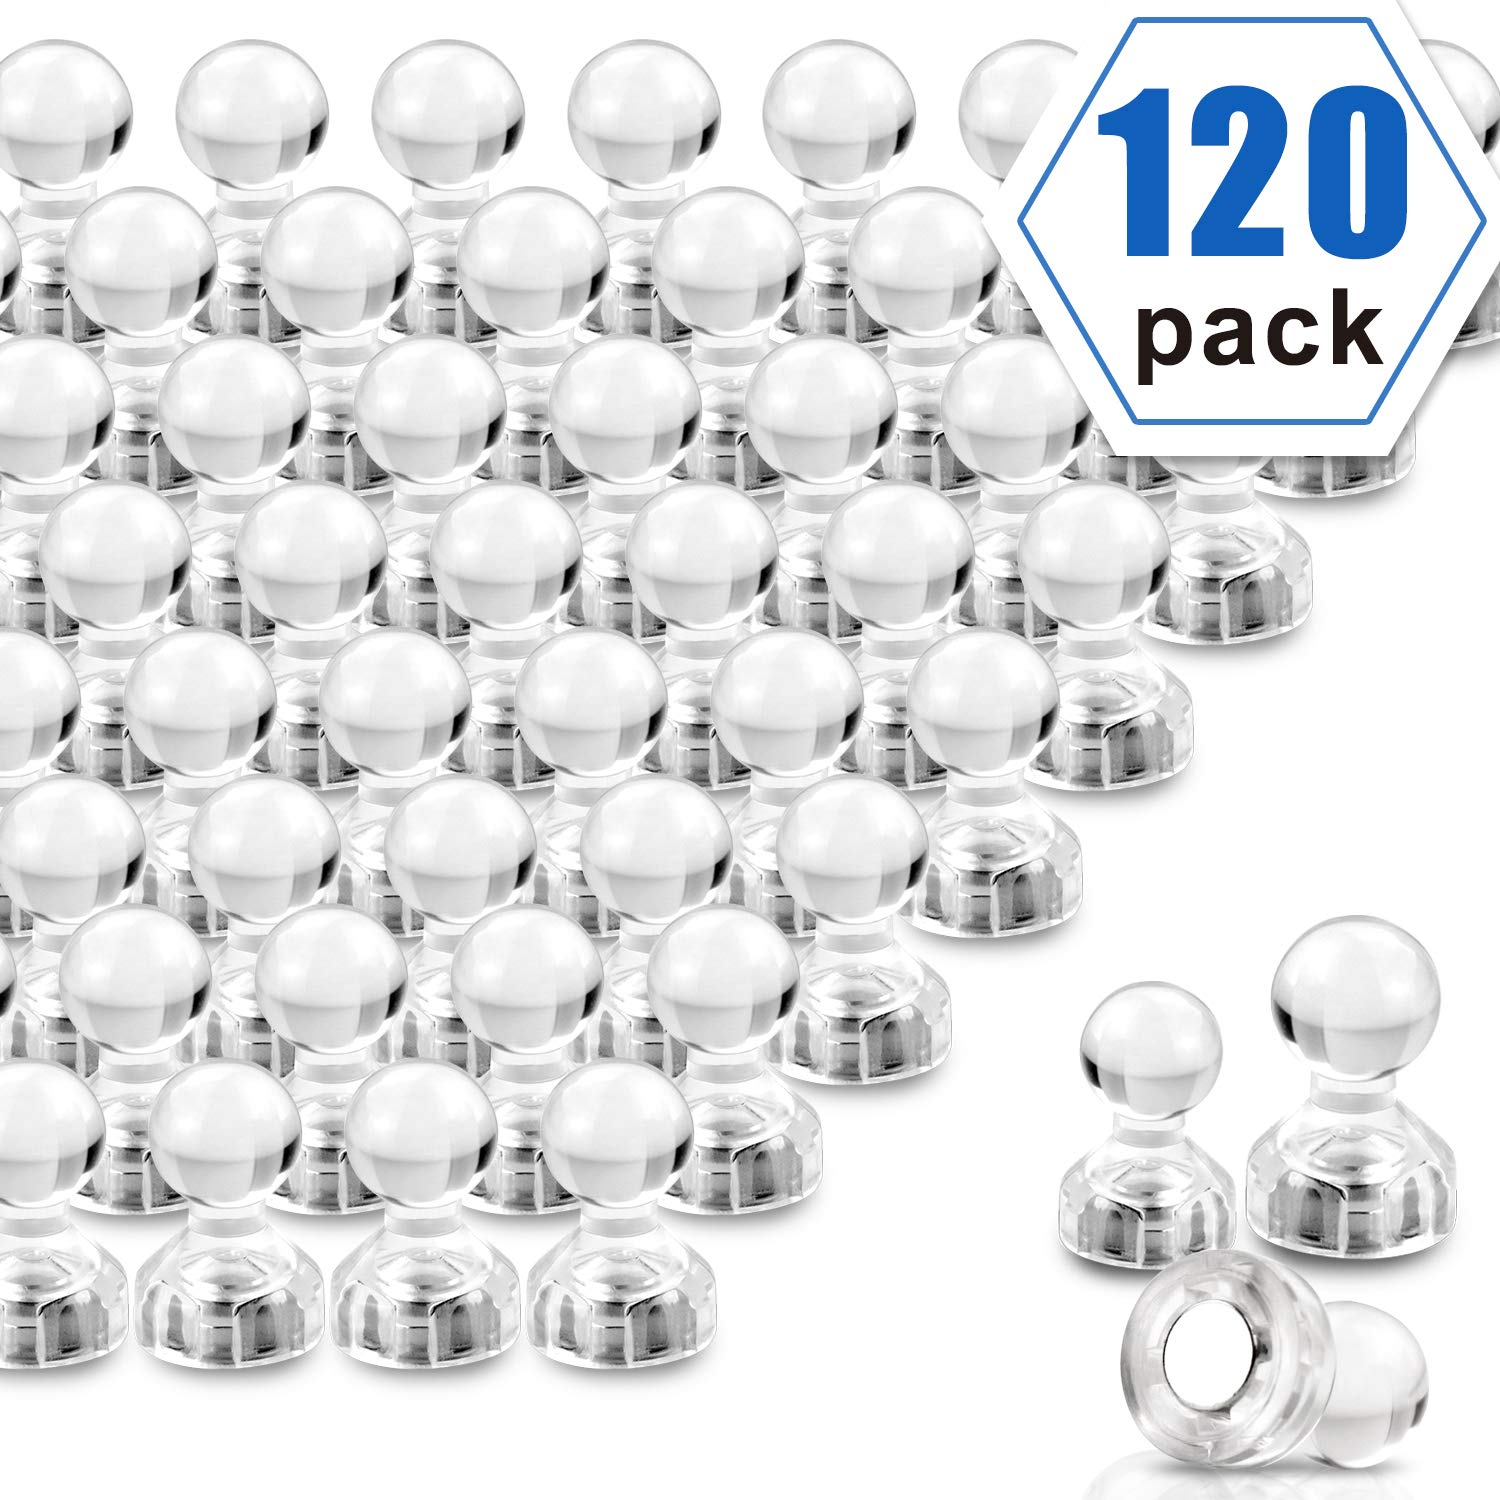 Push Pin Magnets, Transparent crystal colour Fridge Magnets, 120 Pack Strong Magnets, Perfect for Whiteboard Magnets, Office Magnets, Map Magnets